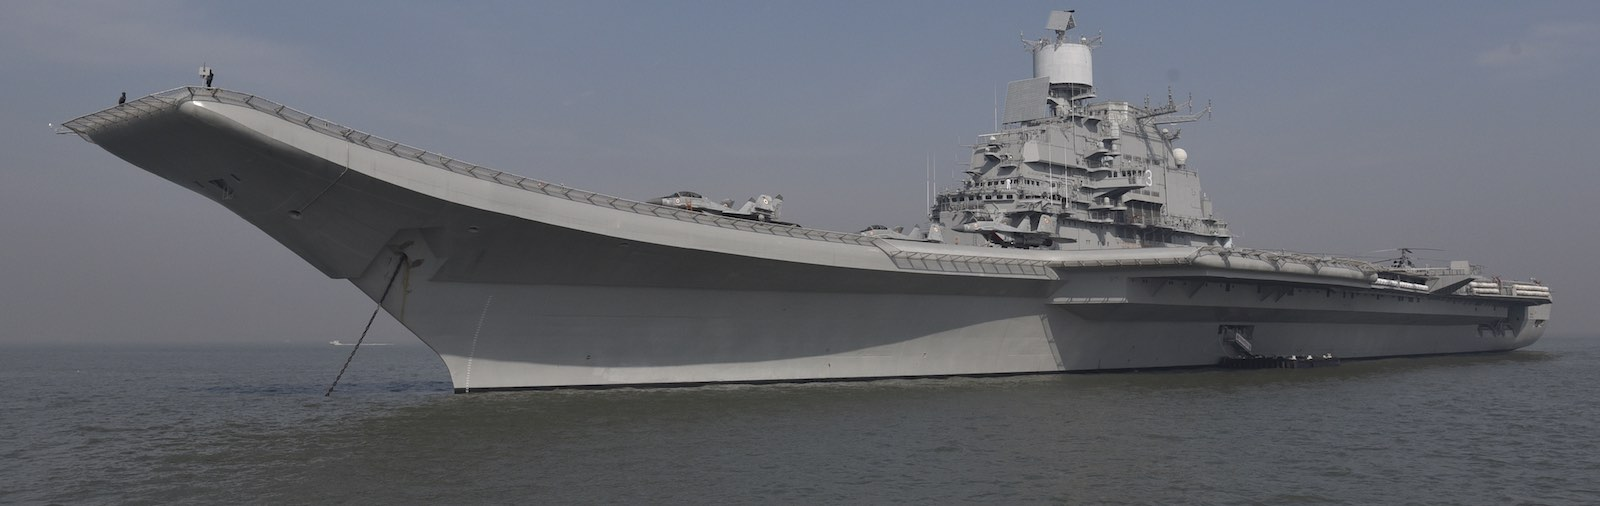 INS Vikramaditya anchored in Mumbai, India, December 2016 (Photo: Anshuman Poyrekar via Getty)